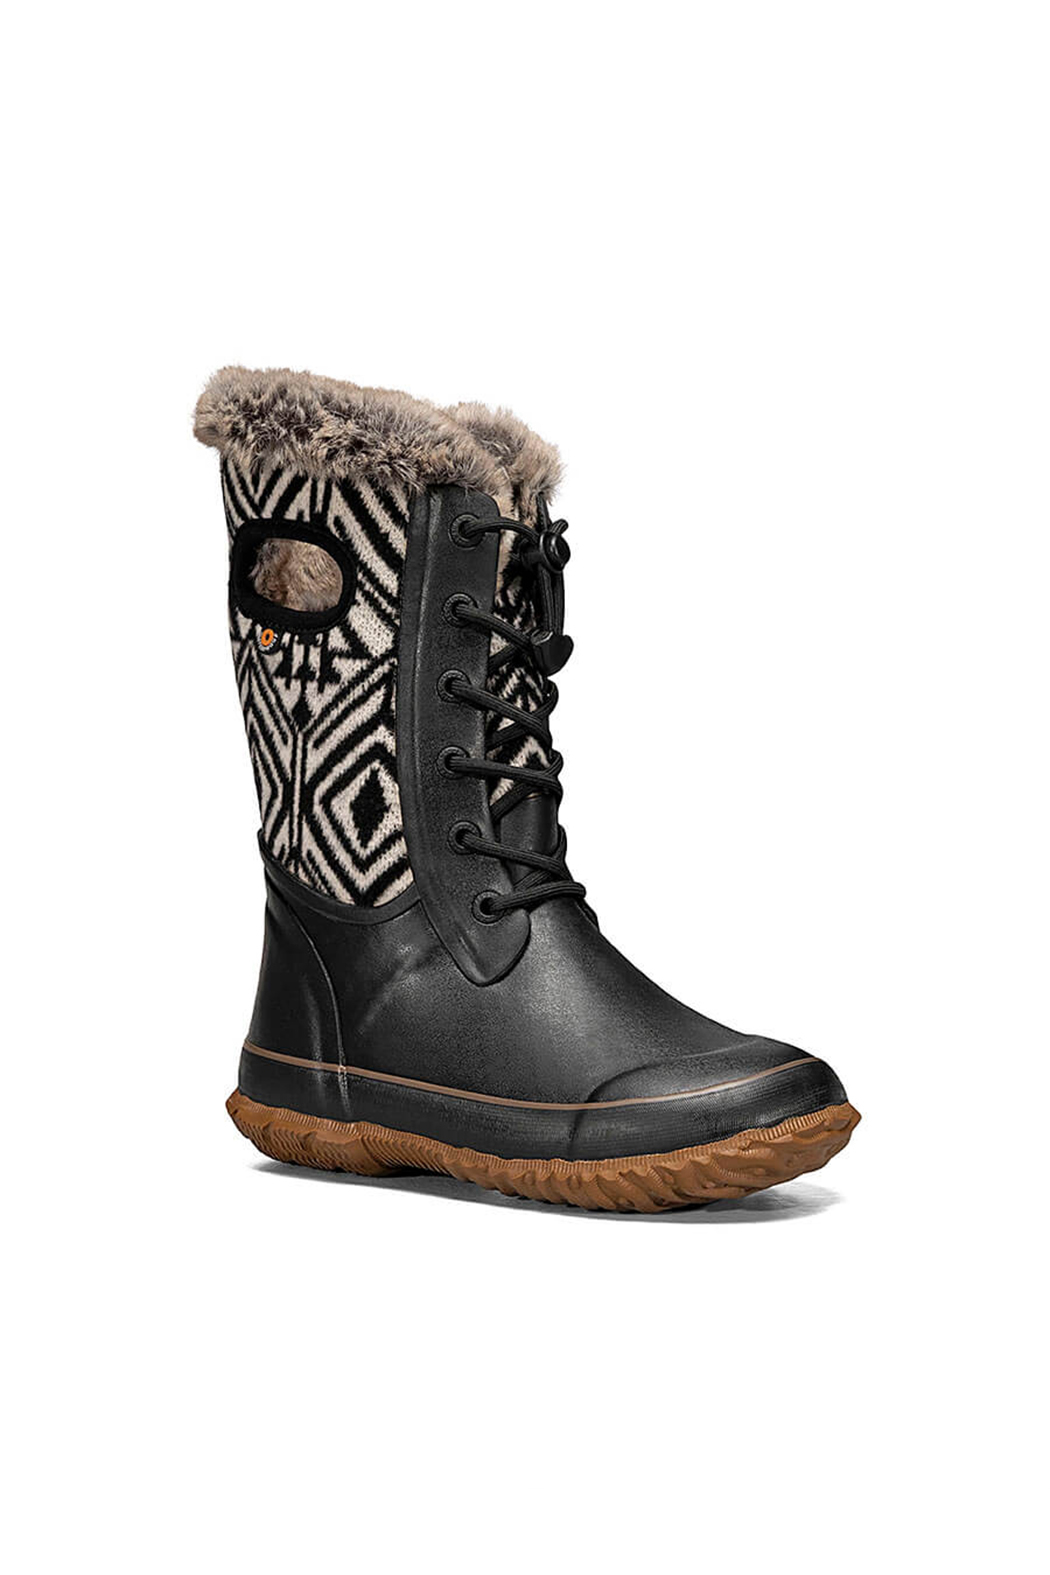 bogs  Arcata Geo Waterproof Winter Boots - Front Full Image